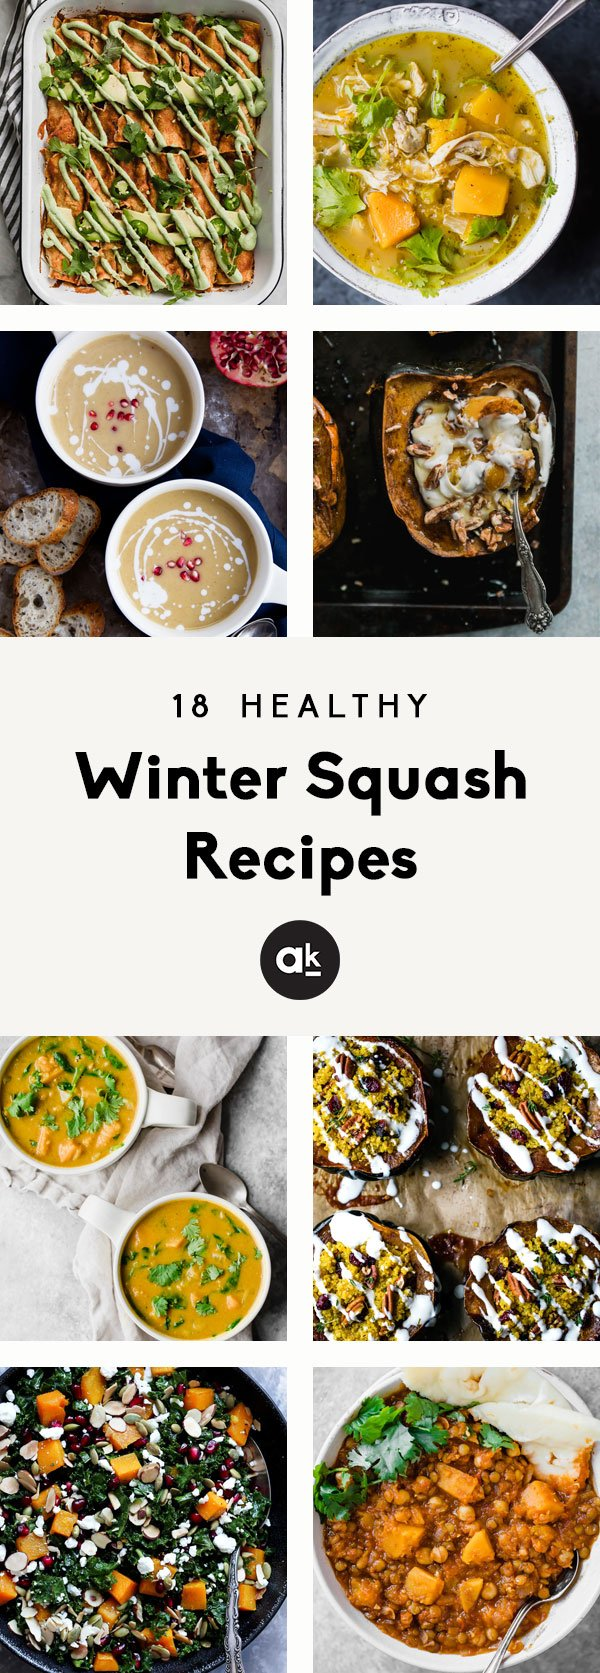 The best healthy winter squash recipes to make for any meal. From soups and sides to enchiladas, these sweet and savory recipes are winter staples.